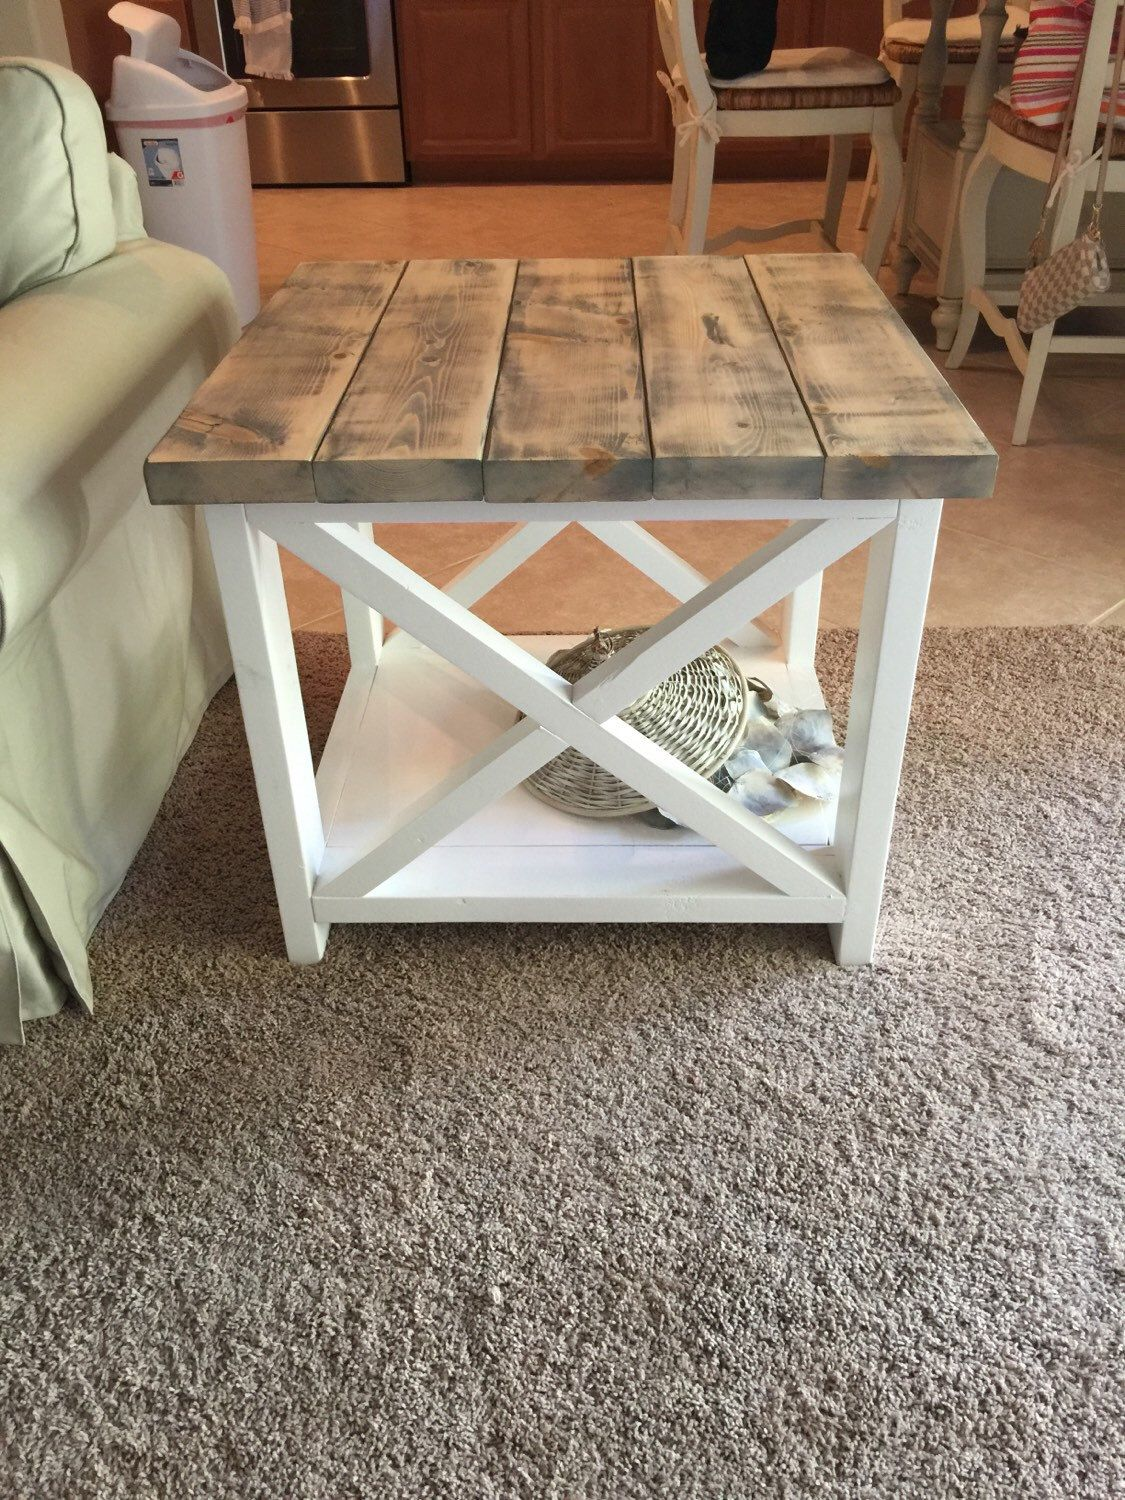 looks easy make decor ideas rustic farmhouse white accent table custom end van thewoodmarket etsy round concrete side patterned living room chairs mirrored console trendy lamps